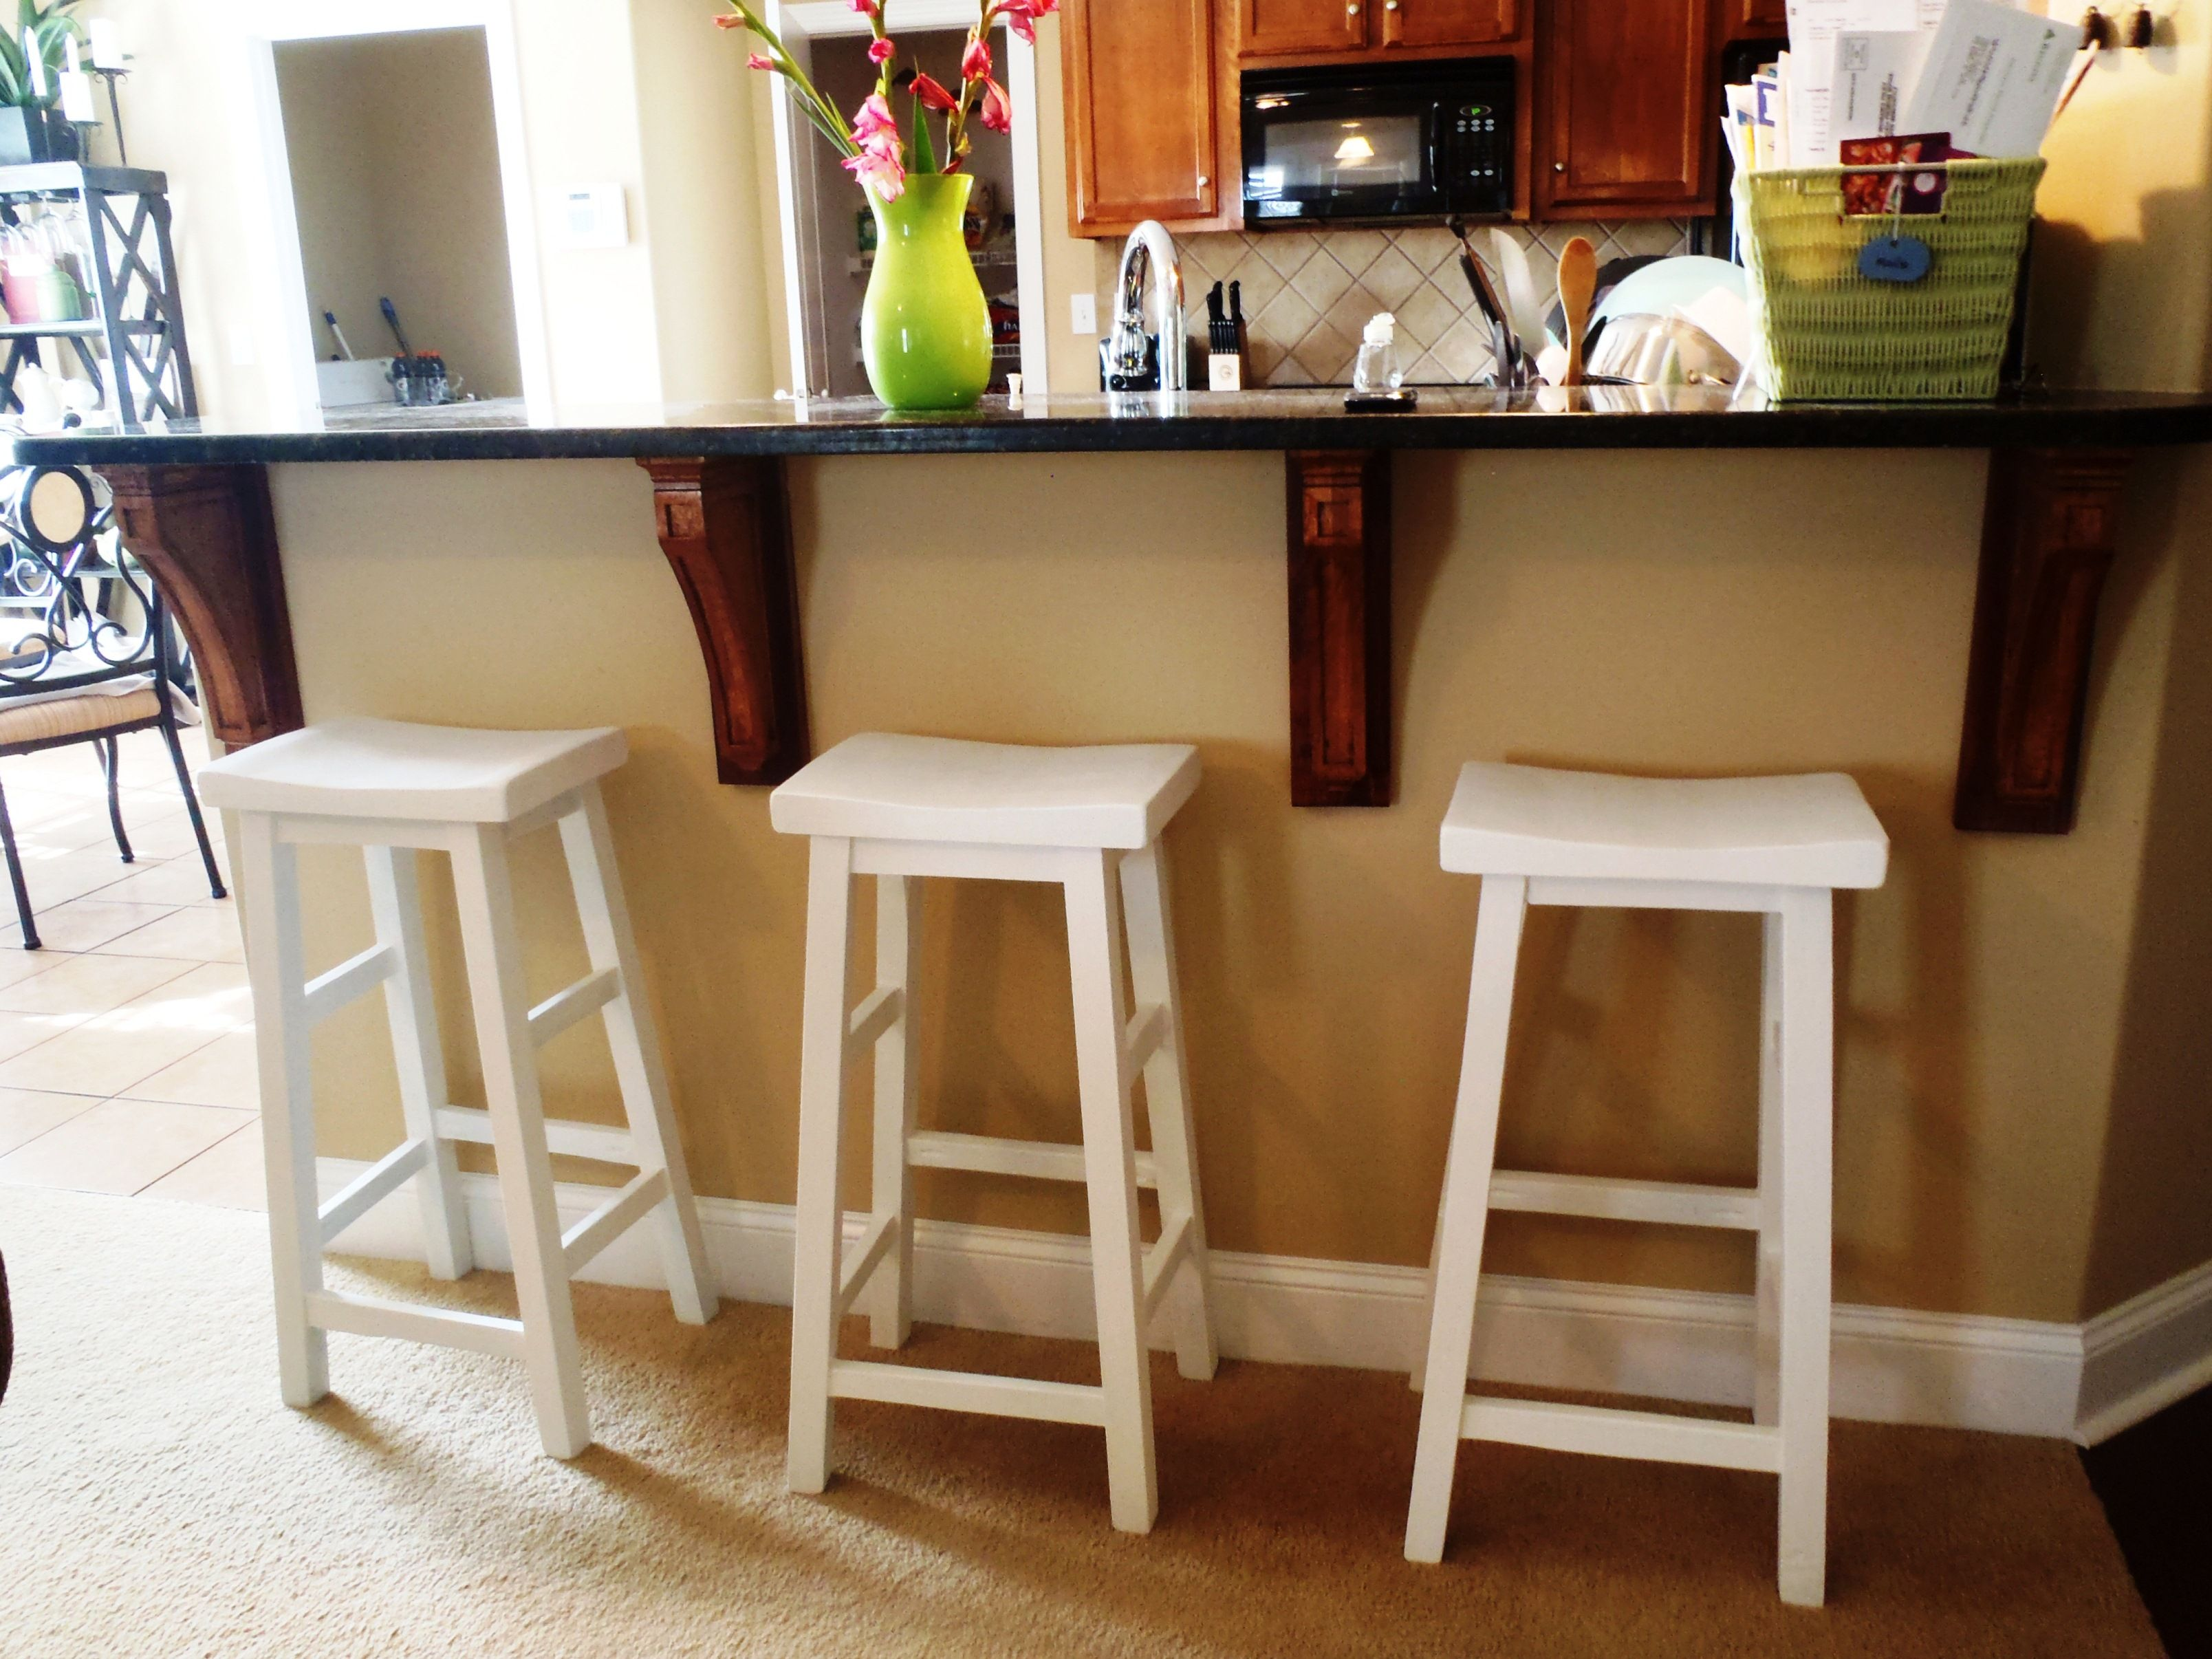 Barstools do it yourself home projects from ana white